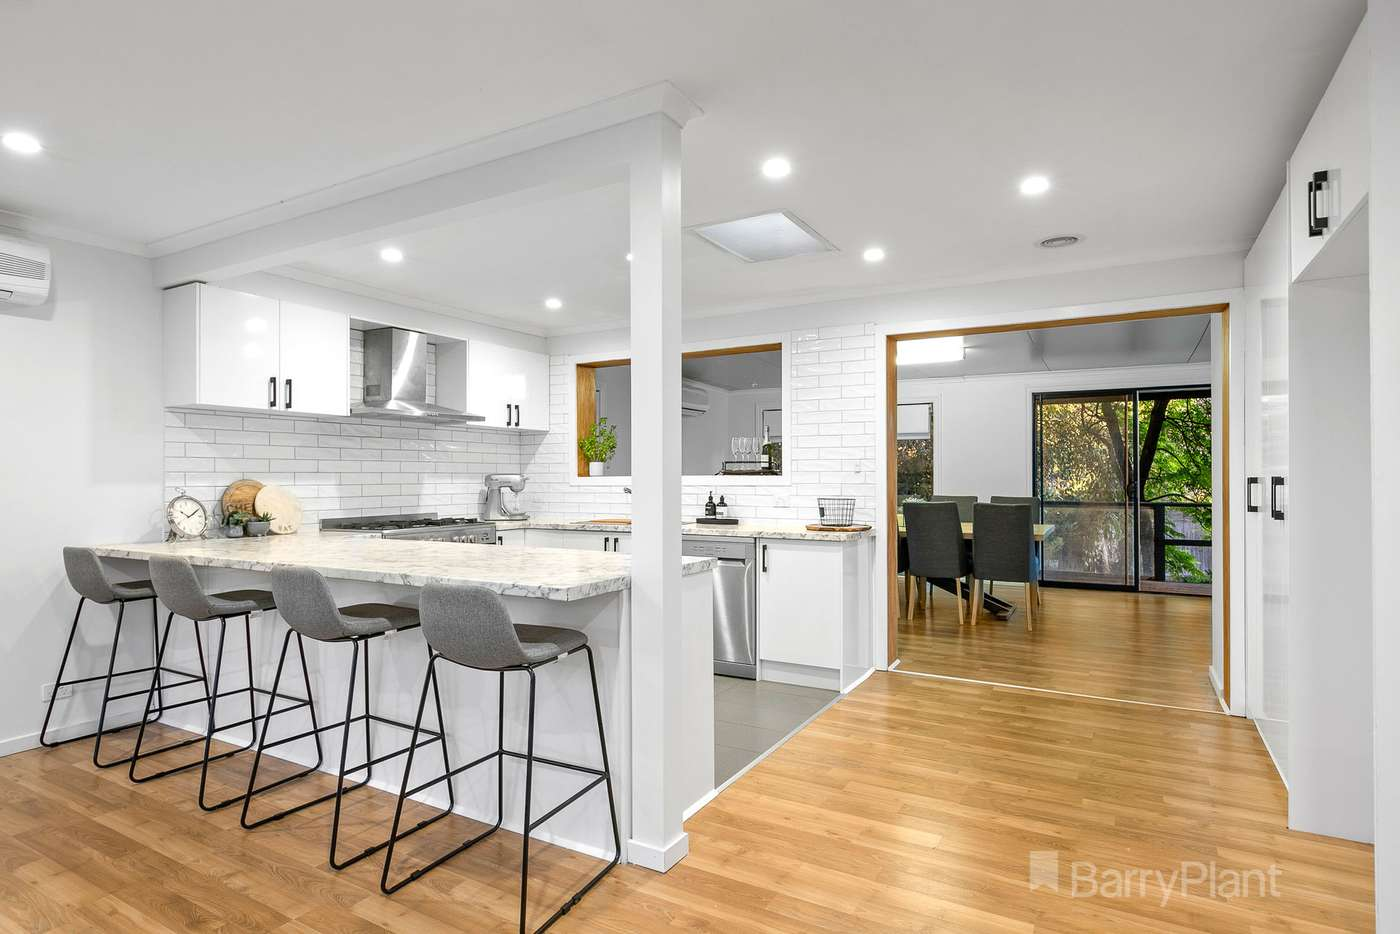 Main view of Homely house listing, 91 Darling Way, Narre Warren VIC 3805